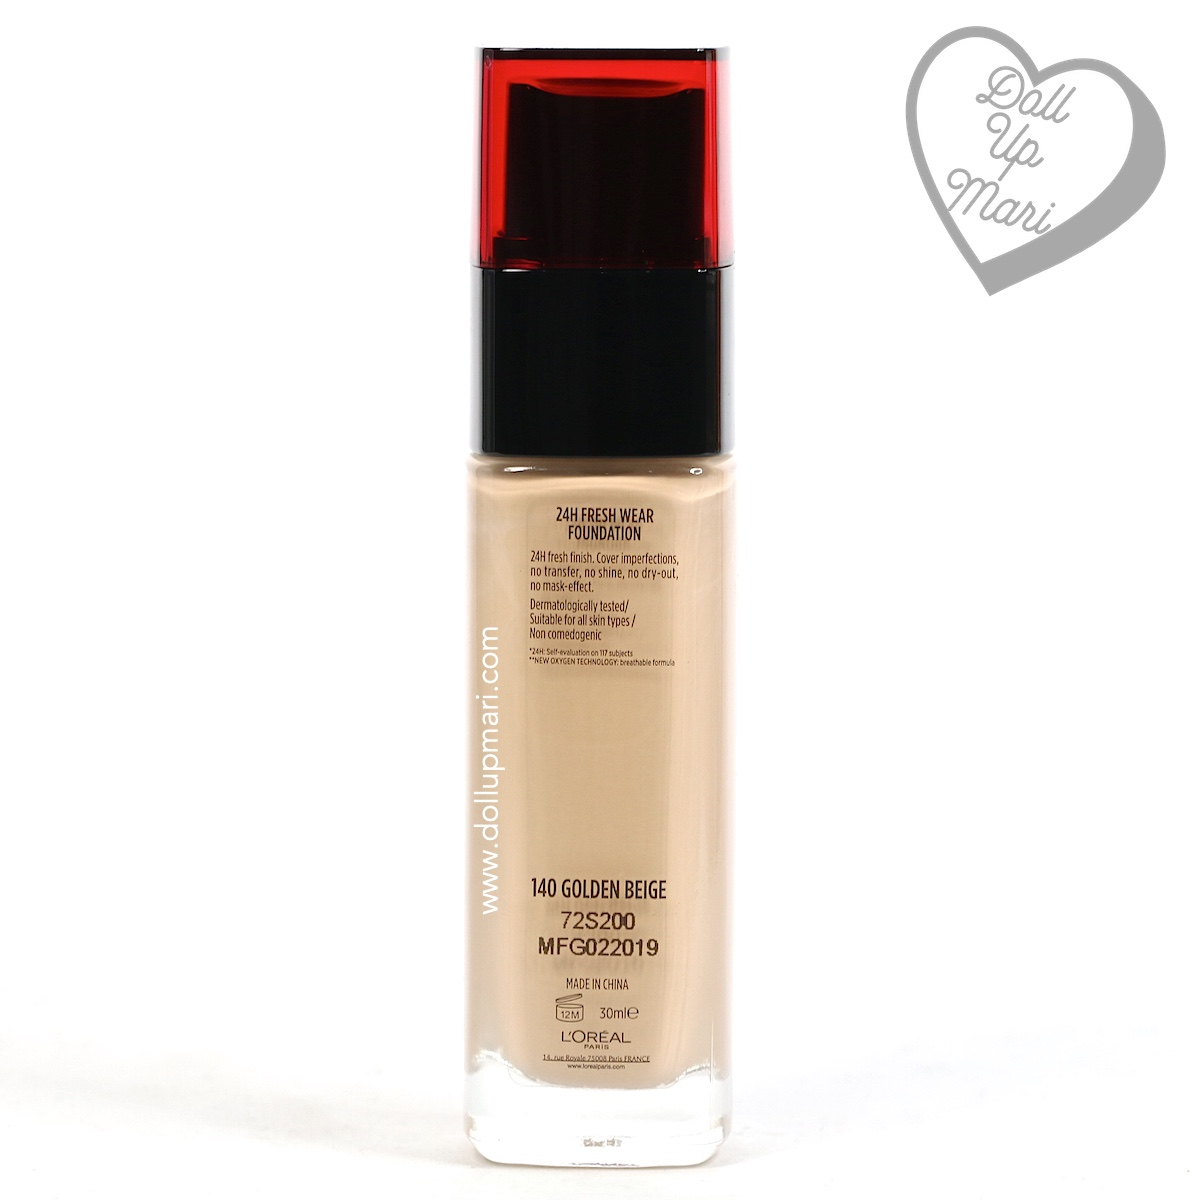 Bottle Rear L'Oréal Paris Infallible 24HR Fresh Wear Liquid Foundation SPF25PA+++ in shade Golden Beige